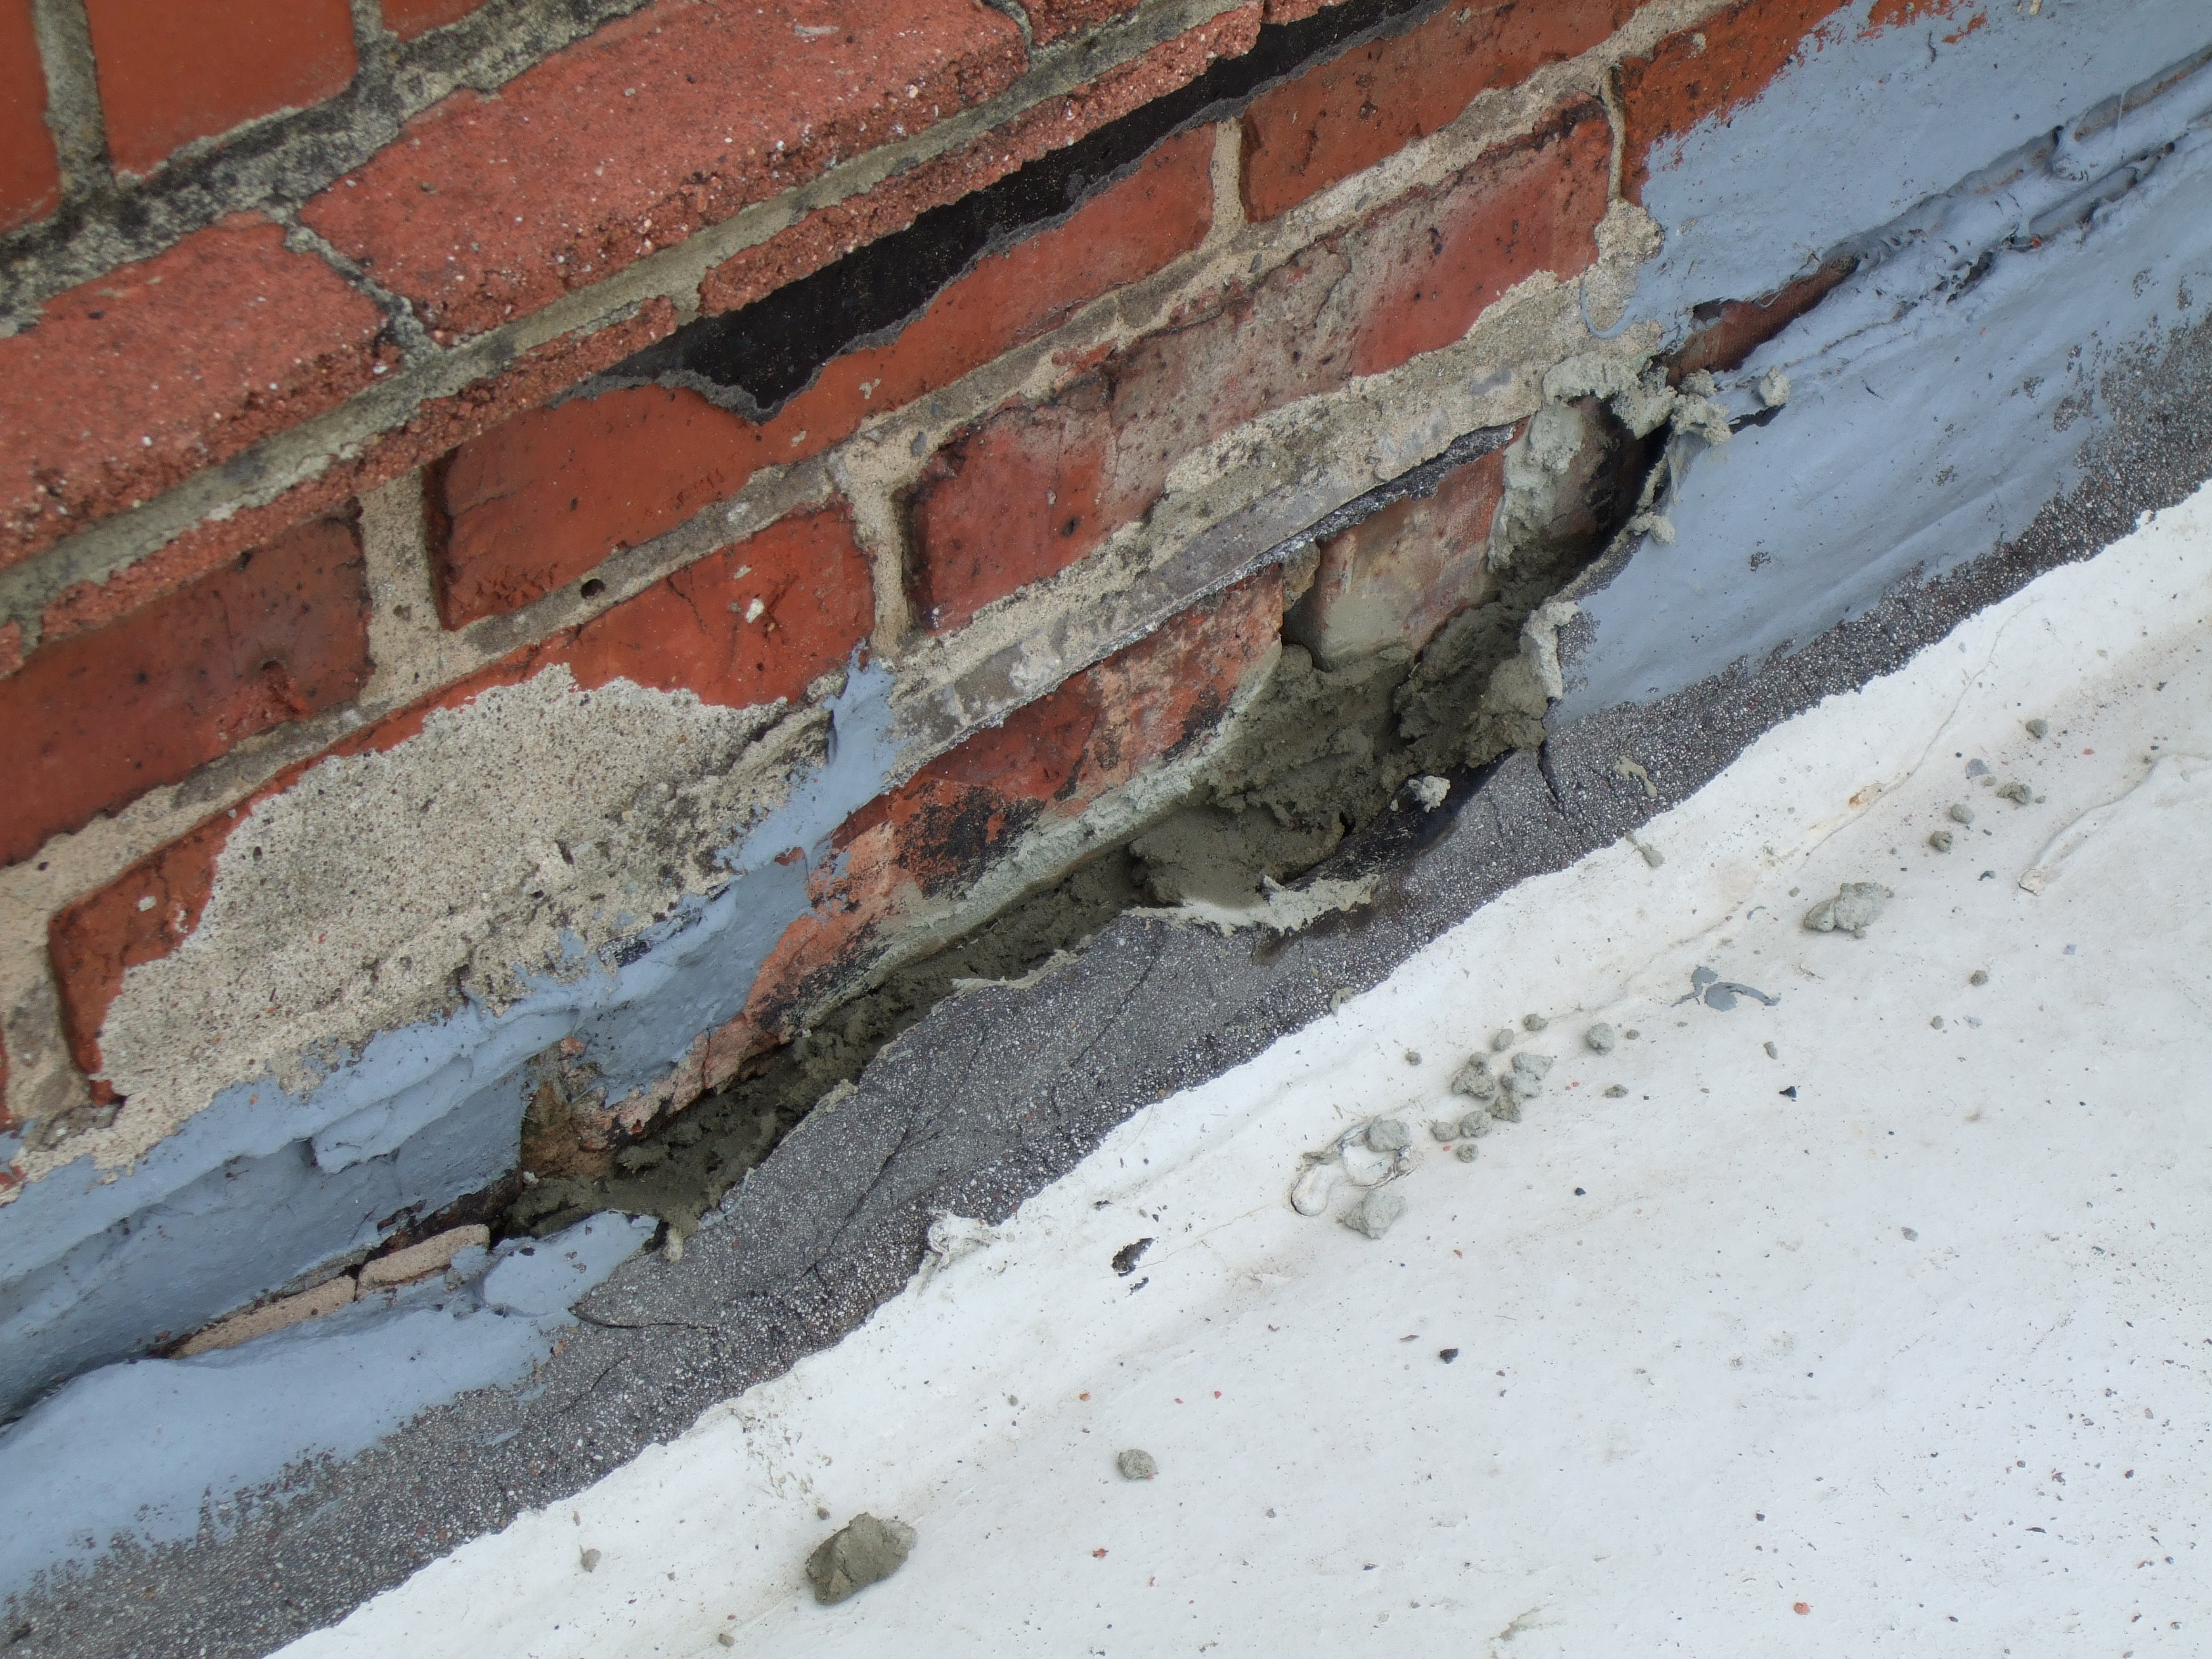 Flashings are key examples where dissimilar roofing materials can prove problematic